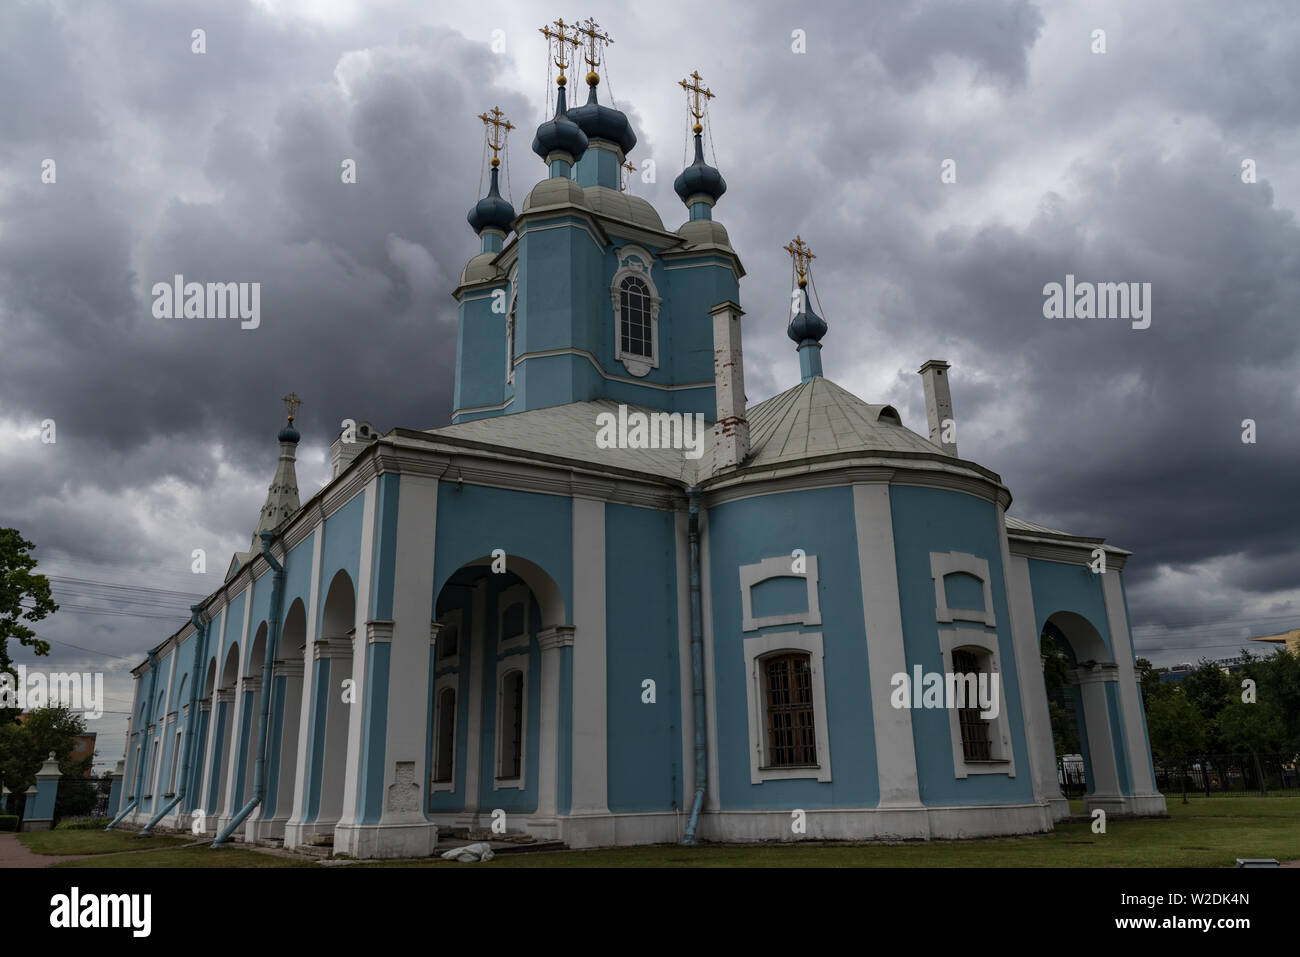 Baroque building of Sampsonievsky Cathedral, Sankt Peterburg, Russia - Stock Image